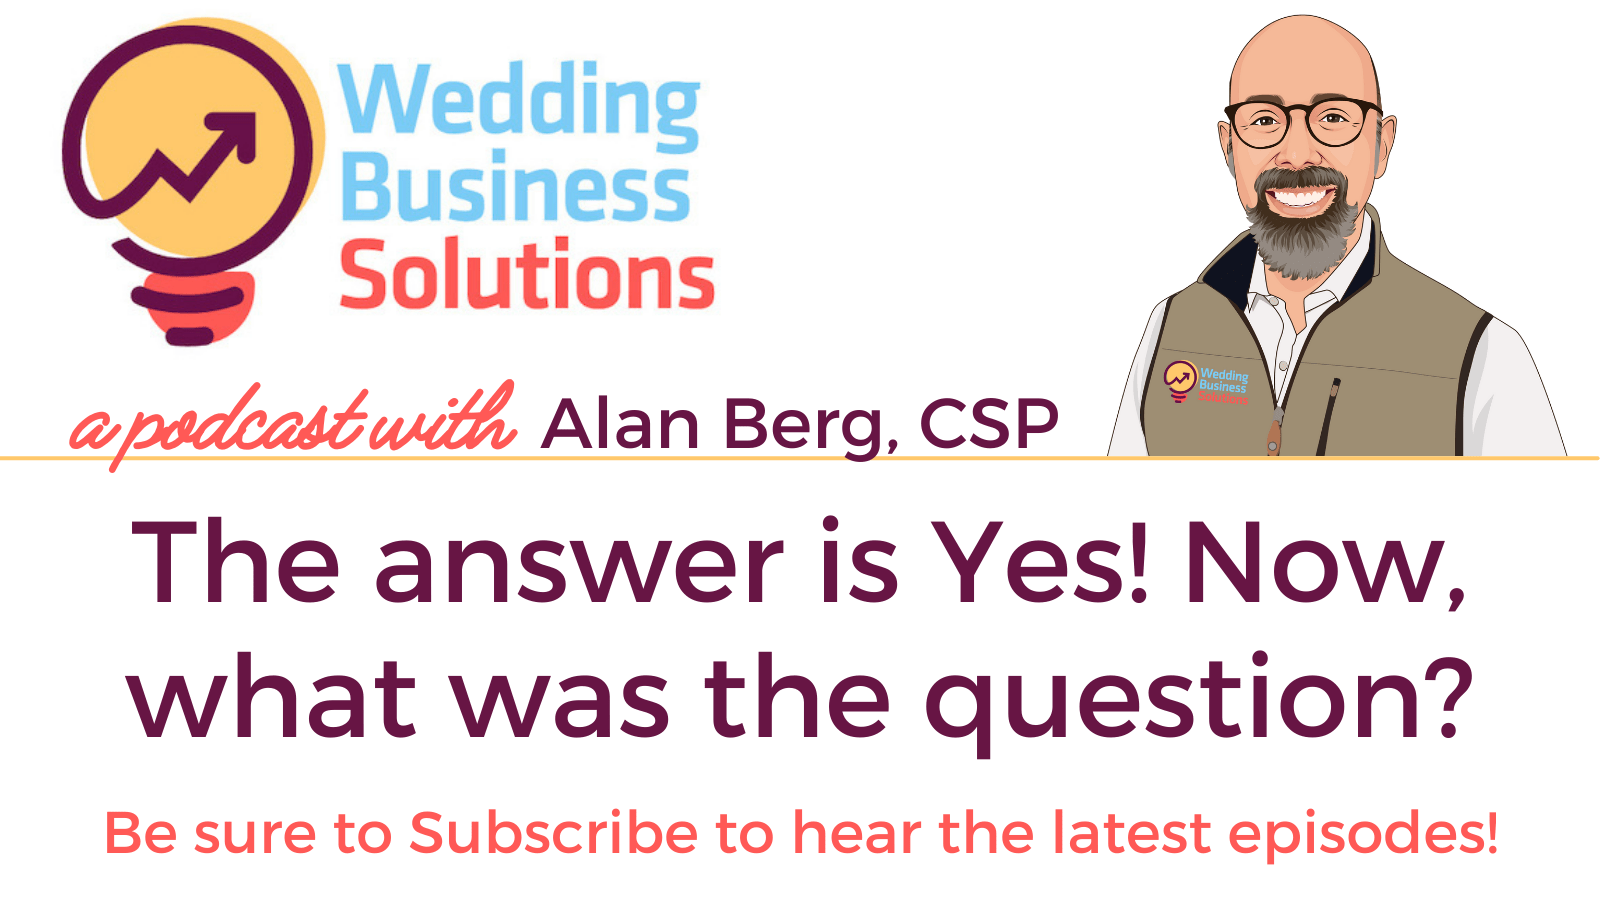 Wedding Business Solutions Podcast with Alan Berg CSP - The answer is Yes. Now, what was the question?